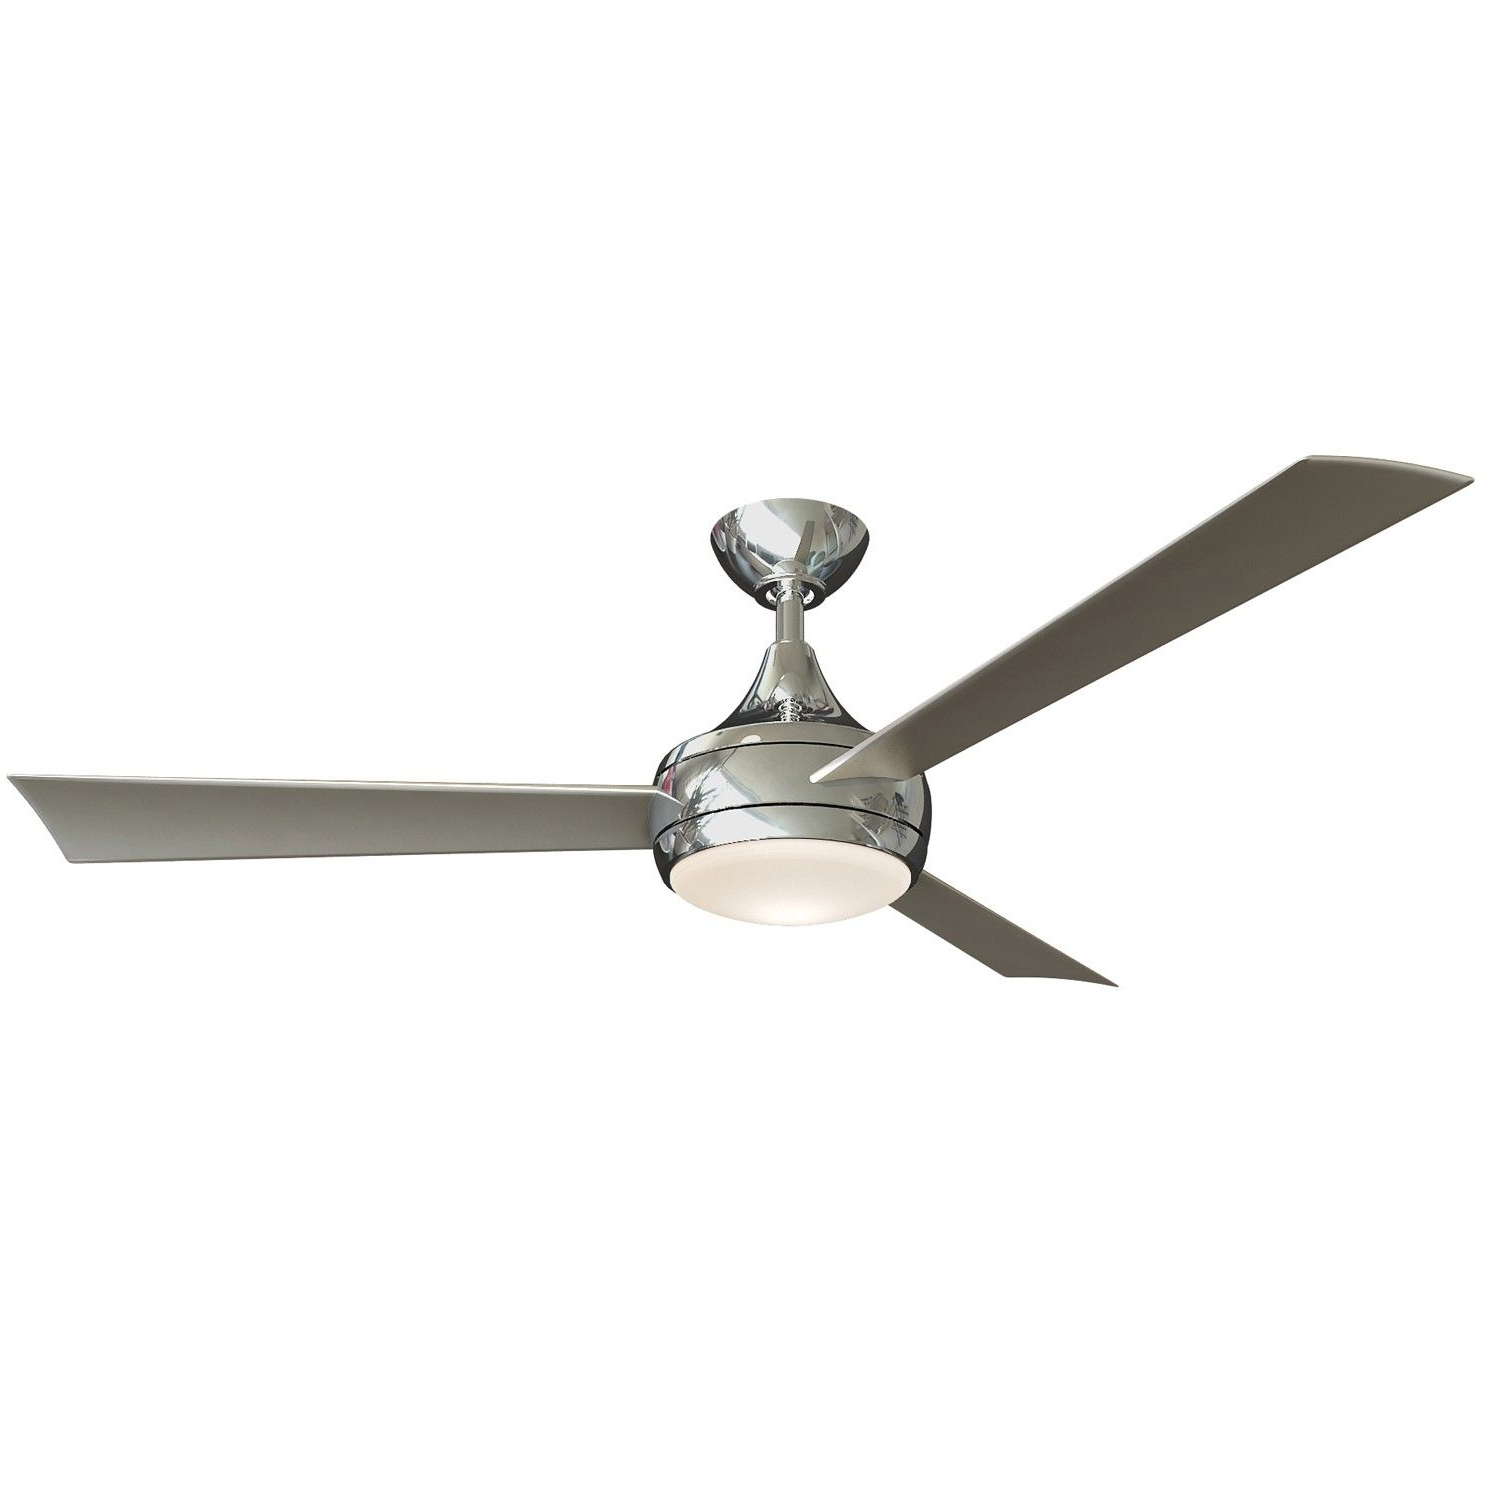 2018 Stainless Steel Outdoor Ceiling Fans With Light Intended For Friday Favorites: Top 10 Led Ceiling Fans (View 5 of 20)